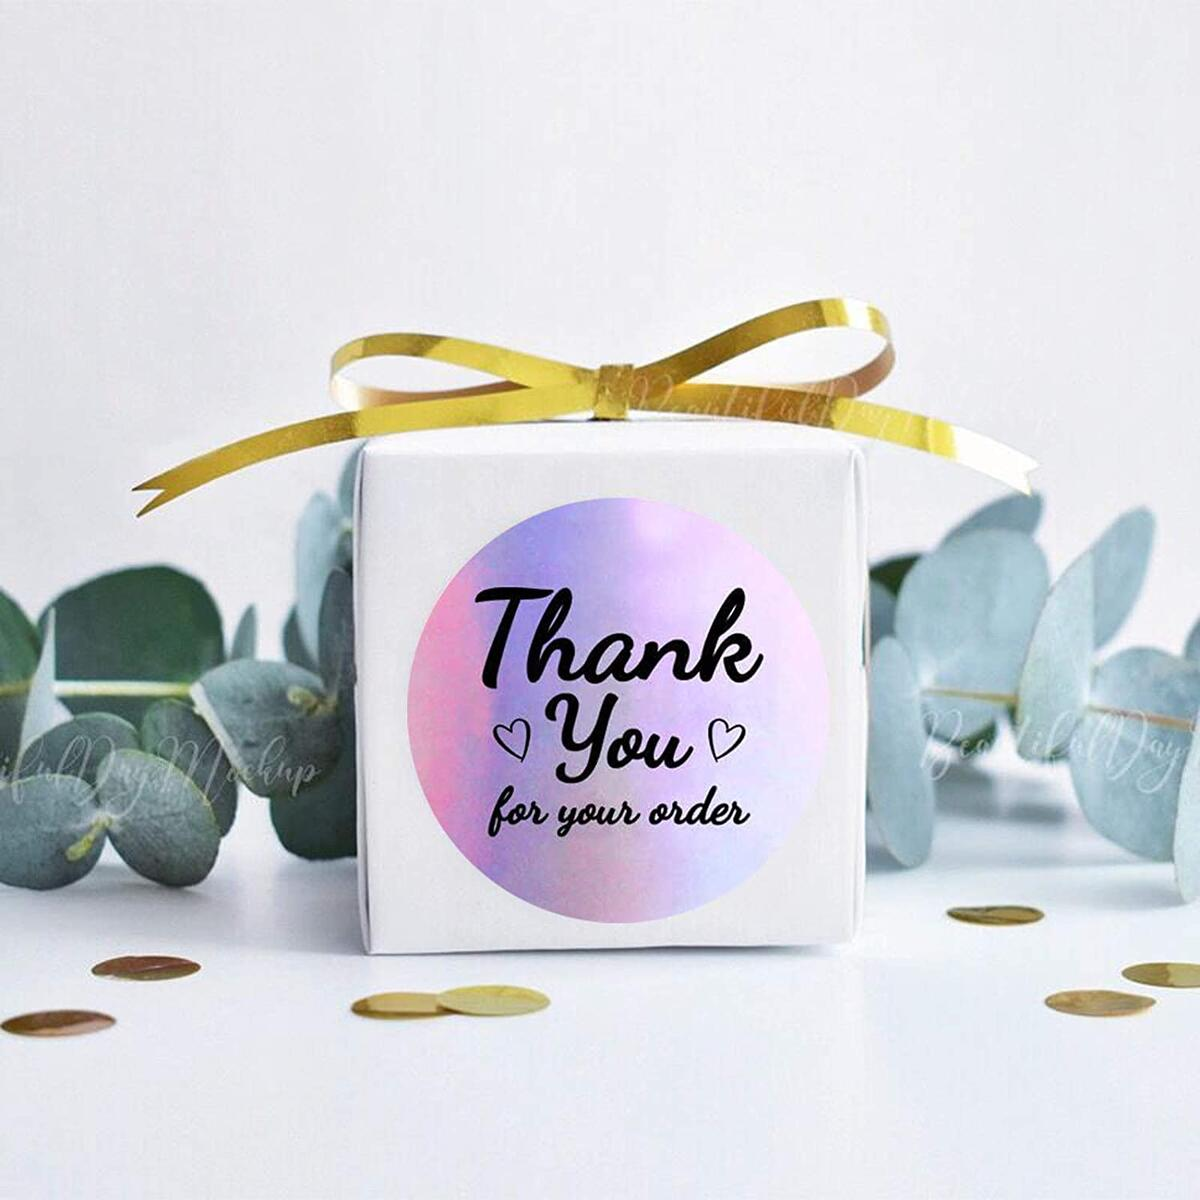 1.5 Inch 600pcs Thank You Stickers Thank You Labels Holographic Stickers Rainbow Holo Stickers for Sealing, Greeting Cards, Boutiques Gift Wraps, 6 Designs